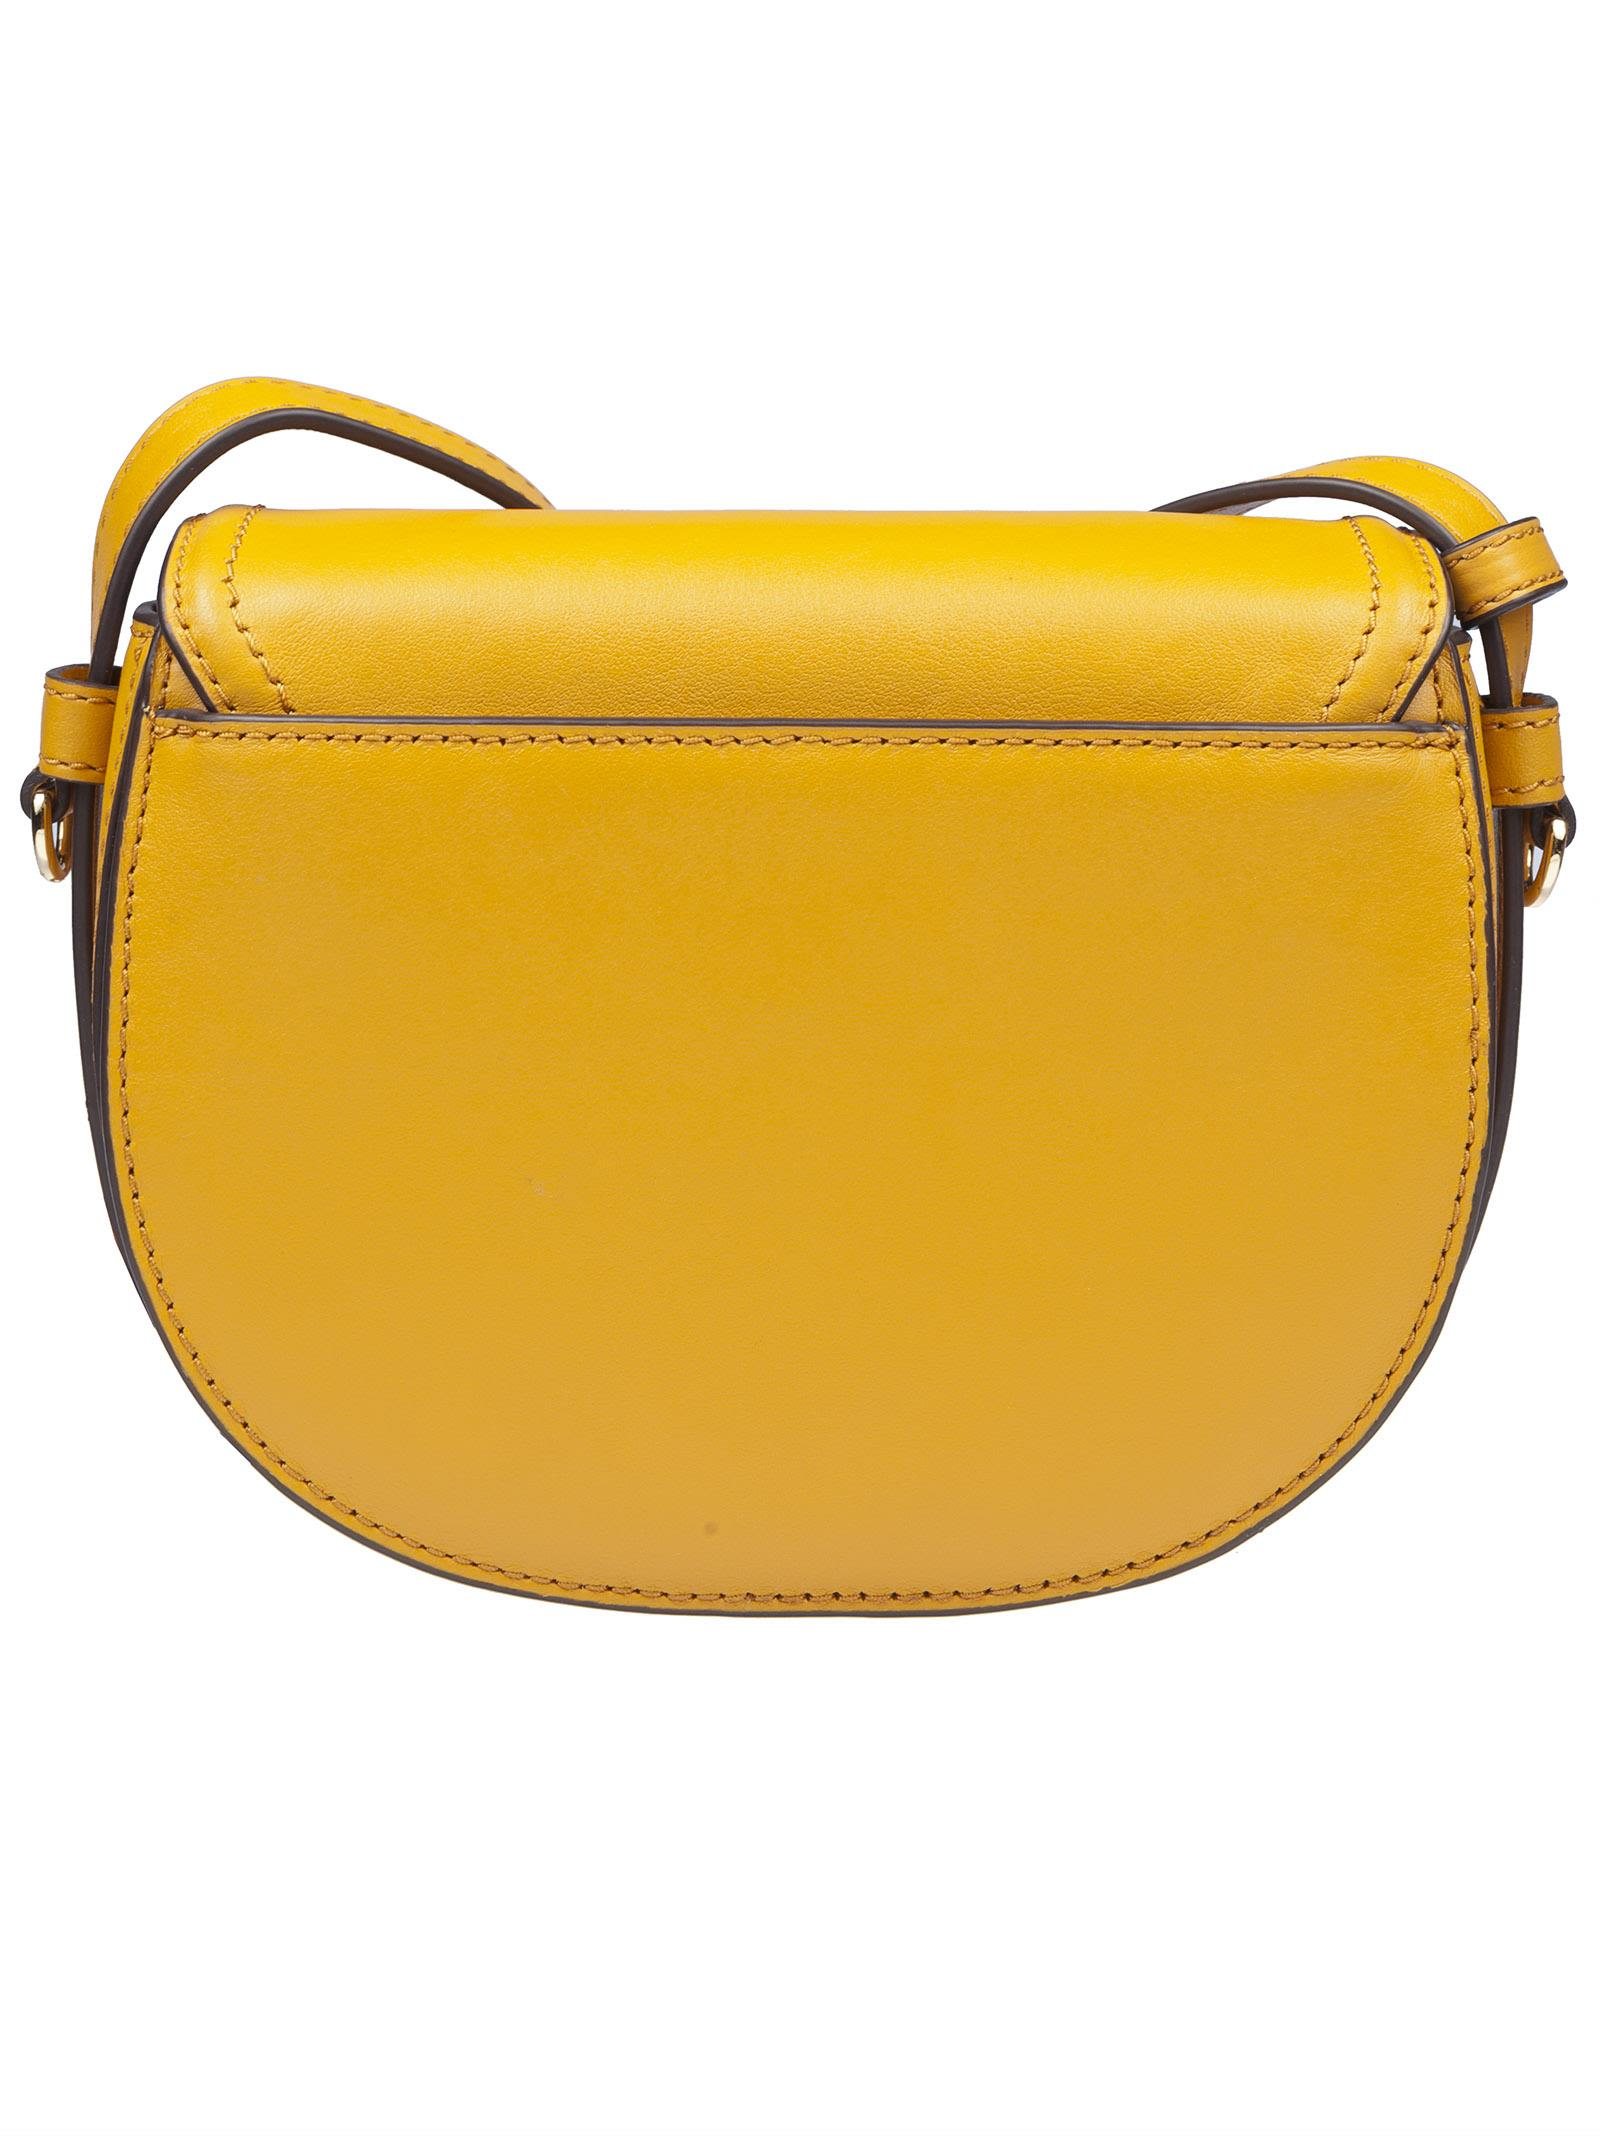 20de681eb313 ... new style michael kors cary mini shoulder bag marigold 267dc 5c0a5